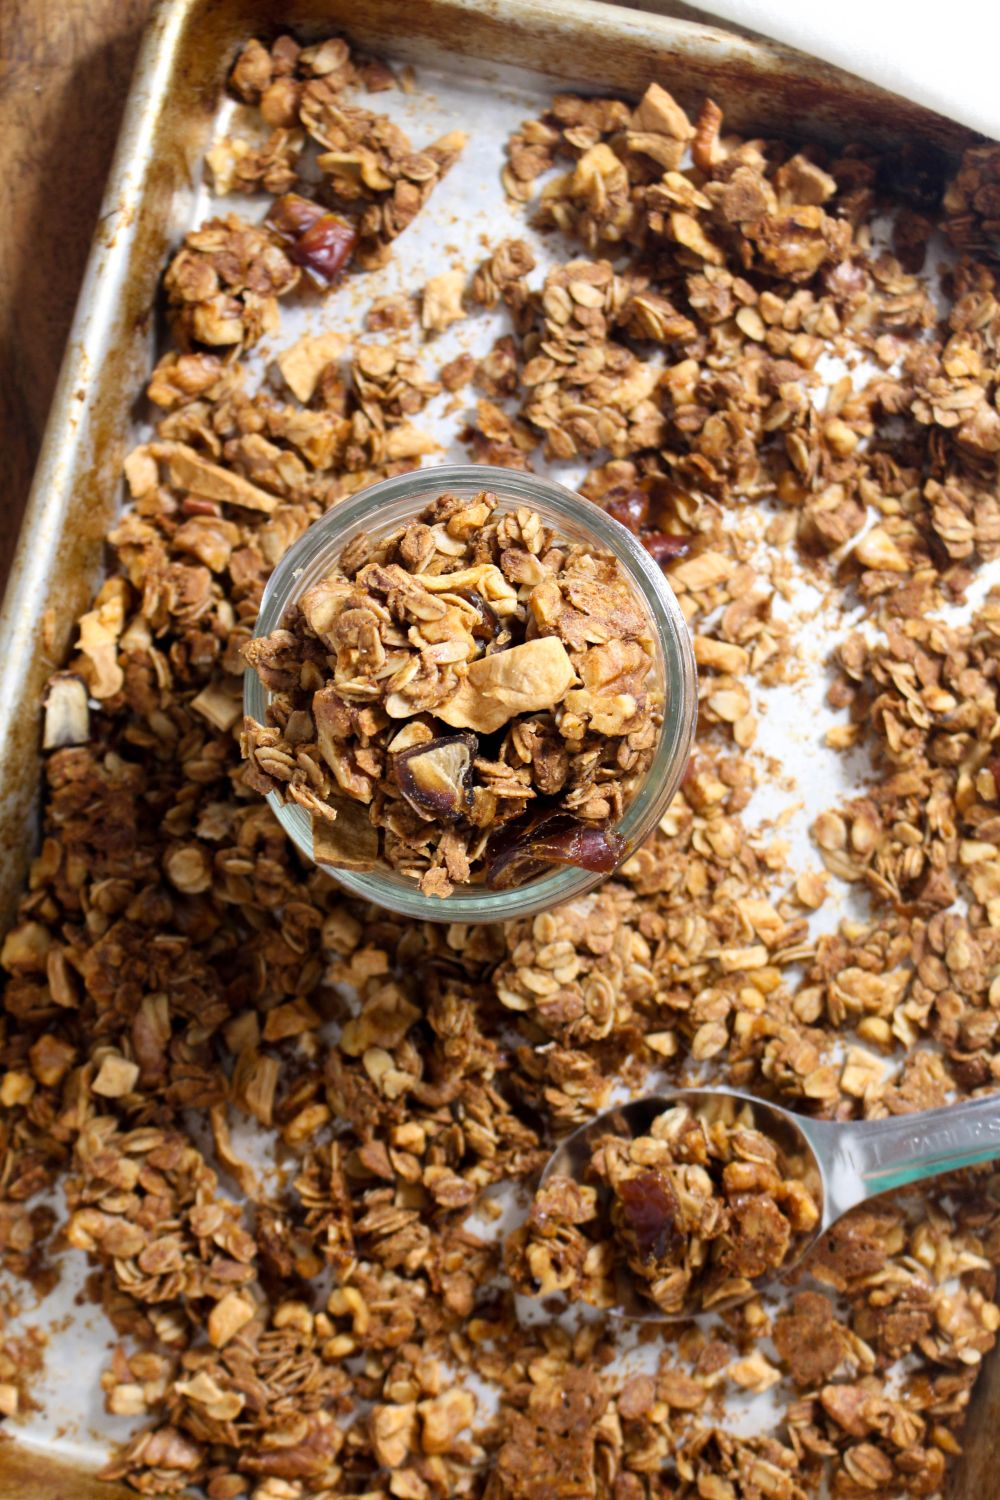 Caramel apple granola bake at 300 degrees